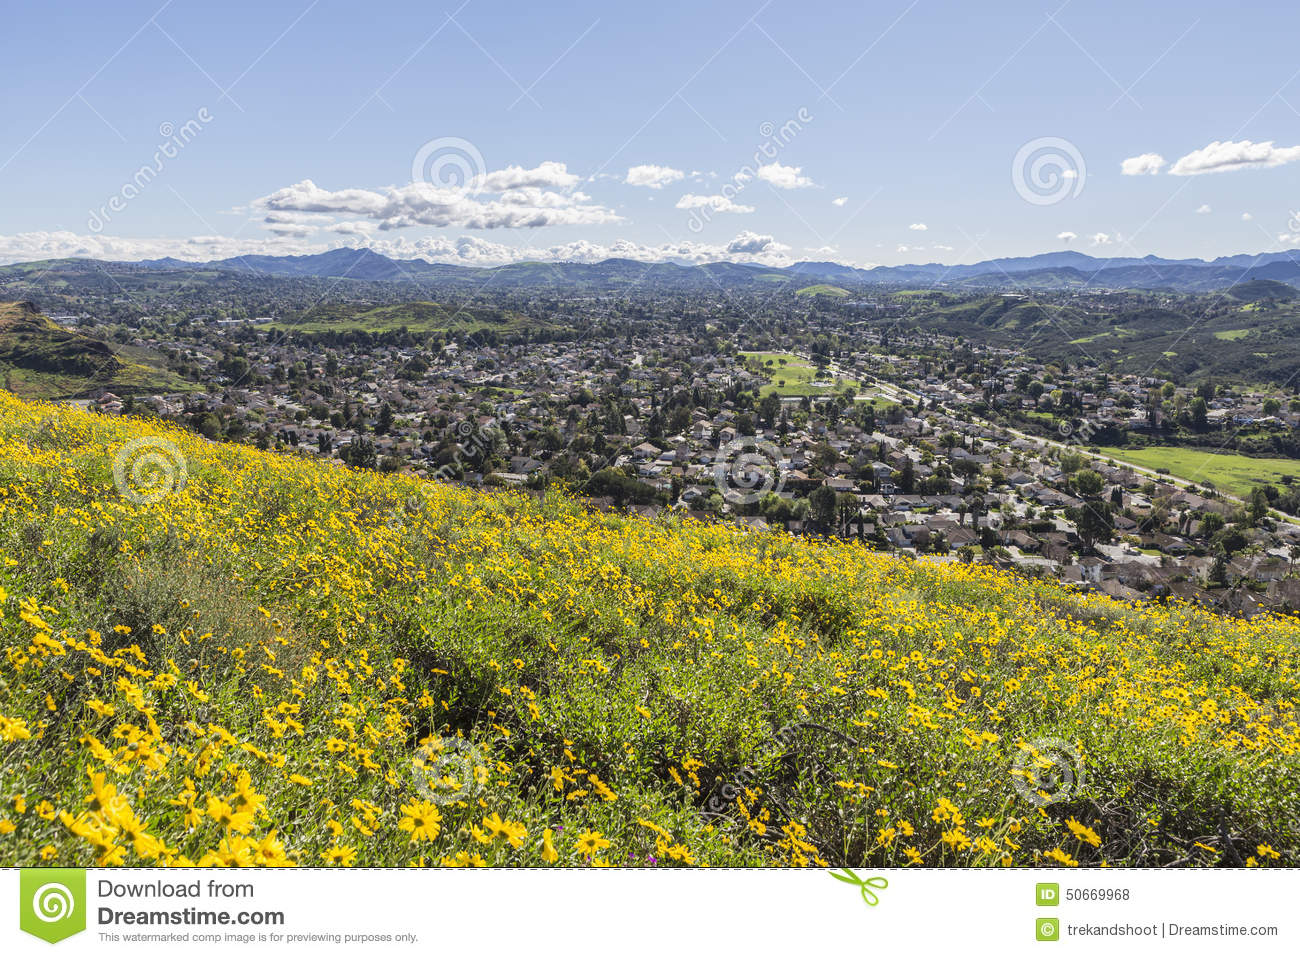 Wildwood Regional Park In Thousand Oaks California Stock Photo